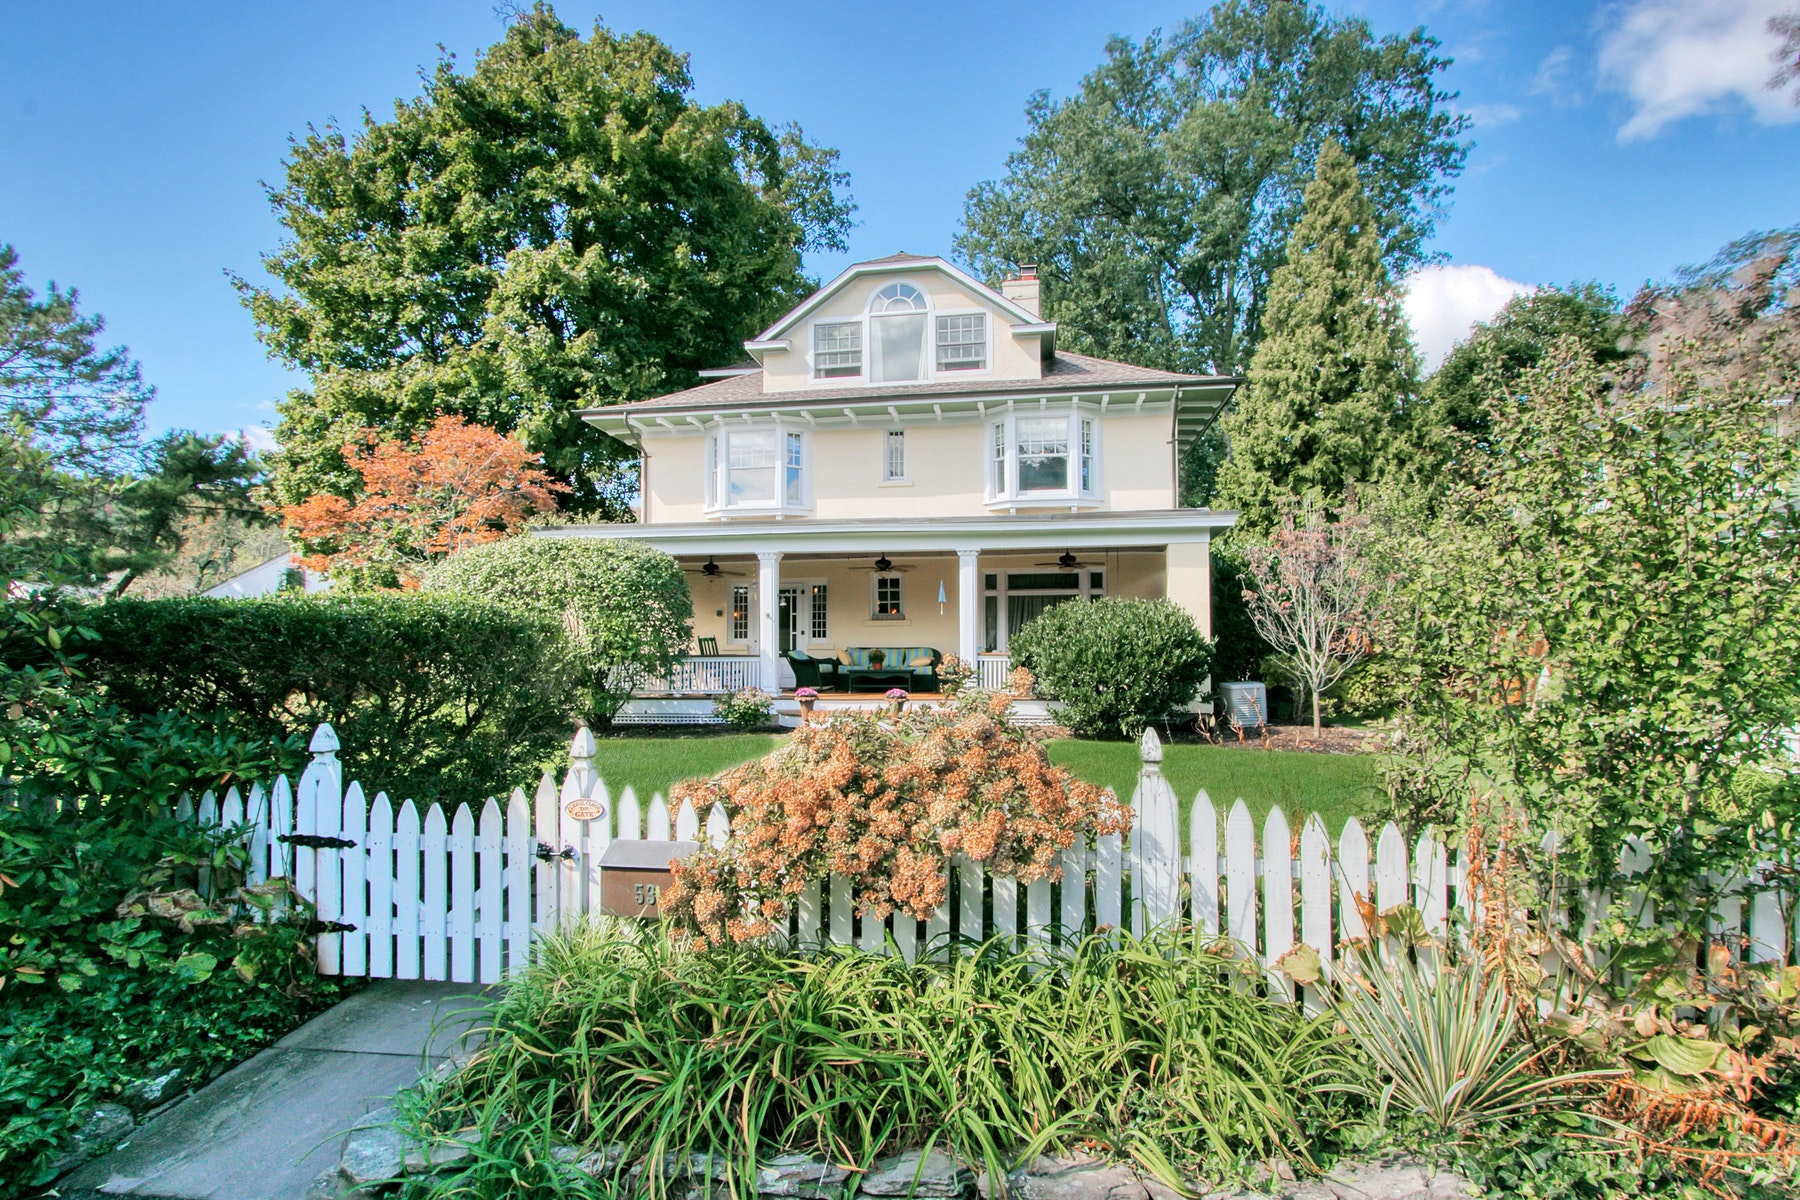 Single Family Homes for Sale at Extraordinary Circa 1905 Colonial 53 Glen Byron Ave Nyack, New York 10960 United States